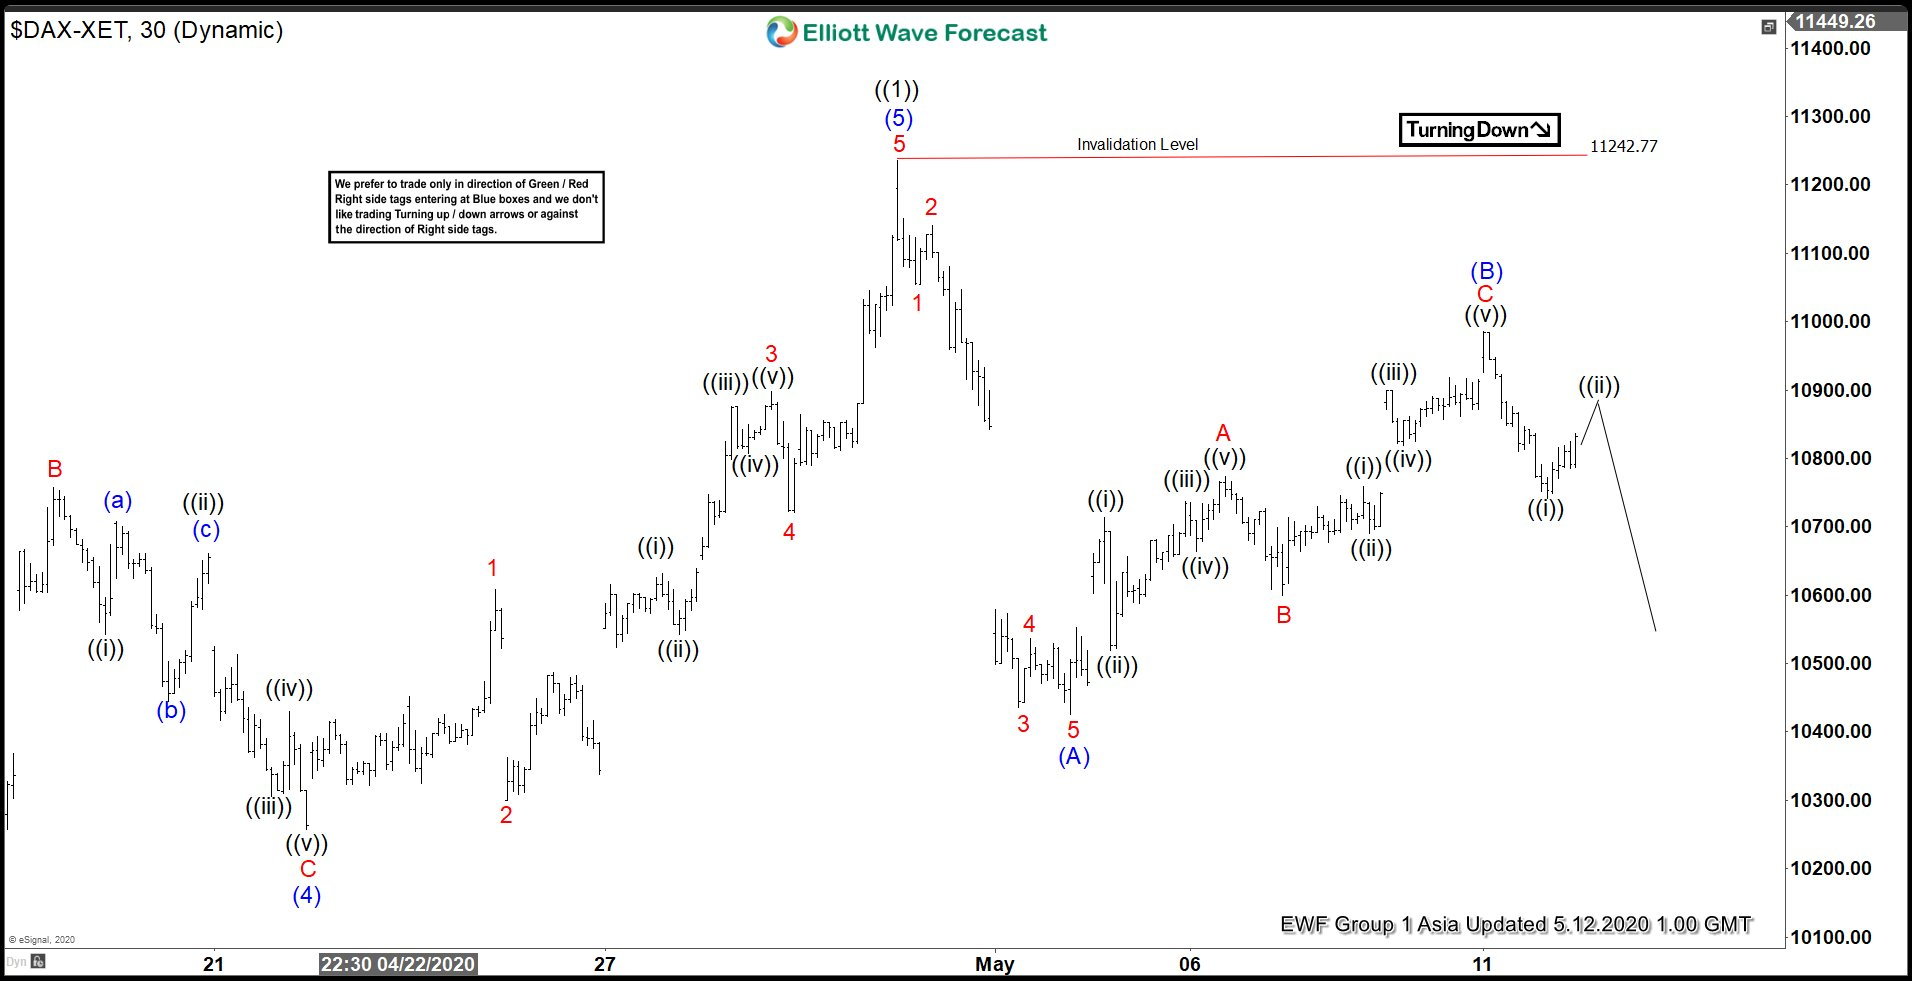 Elliott Wave View: DAX Ended Correction and Turns Lower